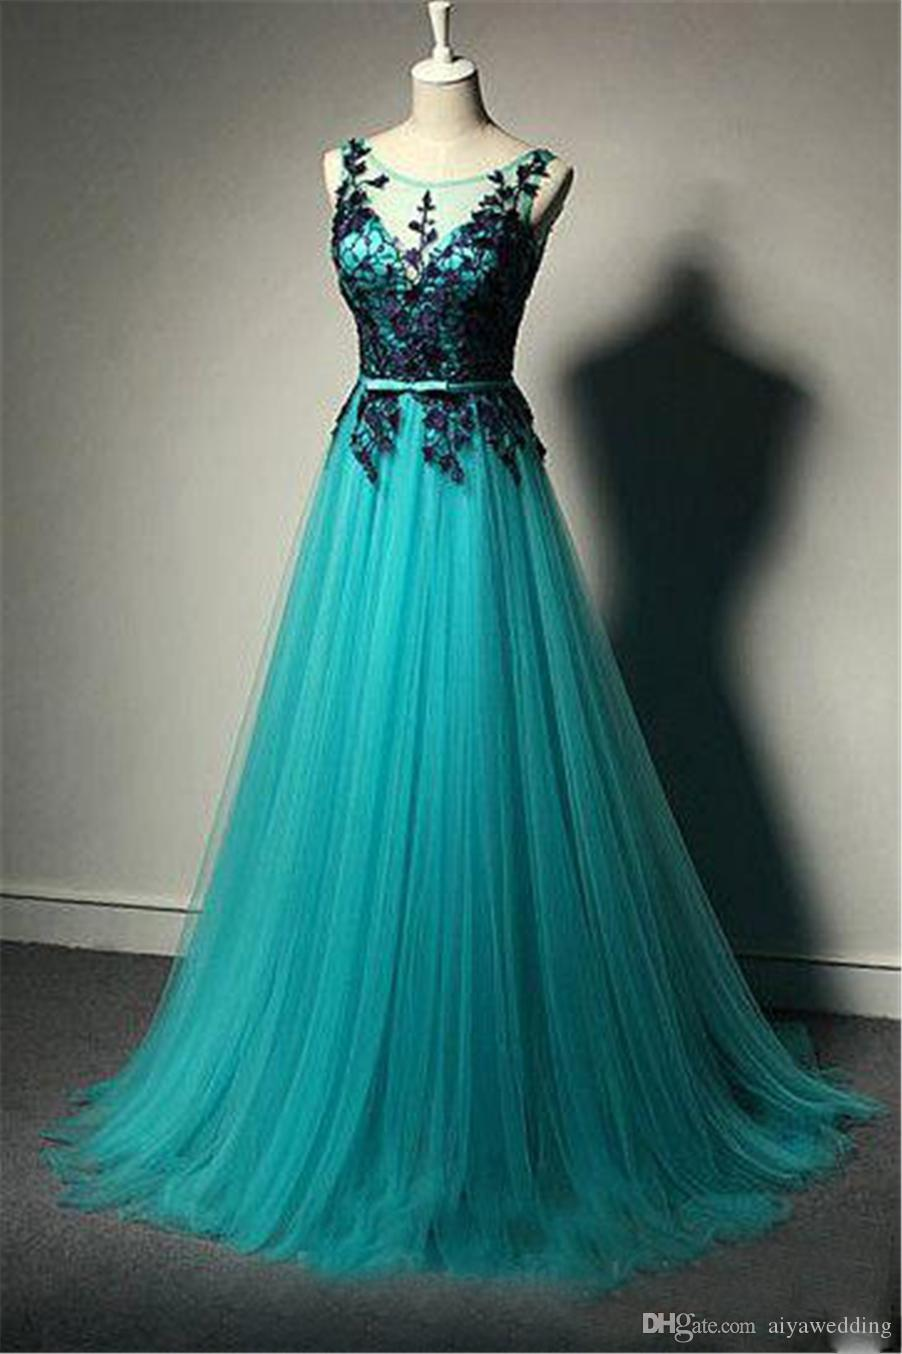 Turquoise Sheer Neck Lace V Back Plus Size Pregnant Dress For Women Middle  East Prom Gowns Reals Long Arabic Lace Evening Dresses Prom Dress Styles ...